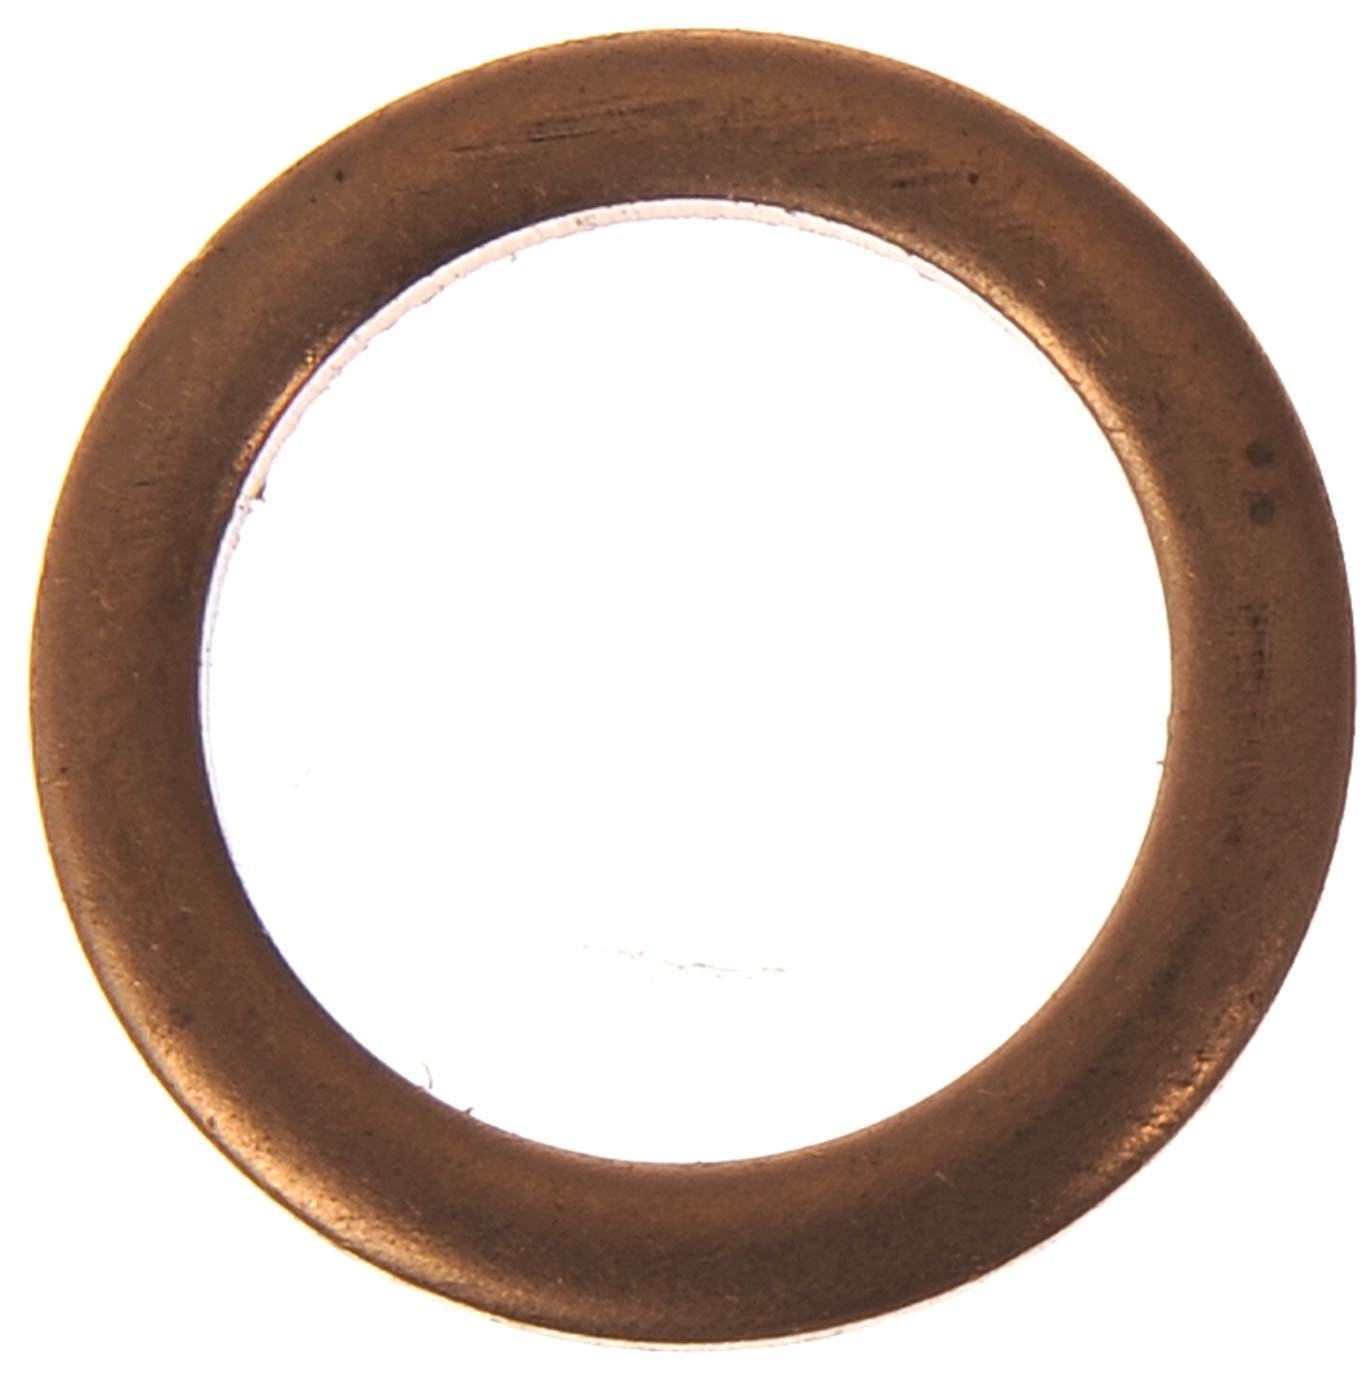 DORMAN - AUTOGRADE - Engine Oil Drain Plug Gasket - DOC 65399